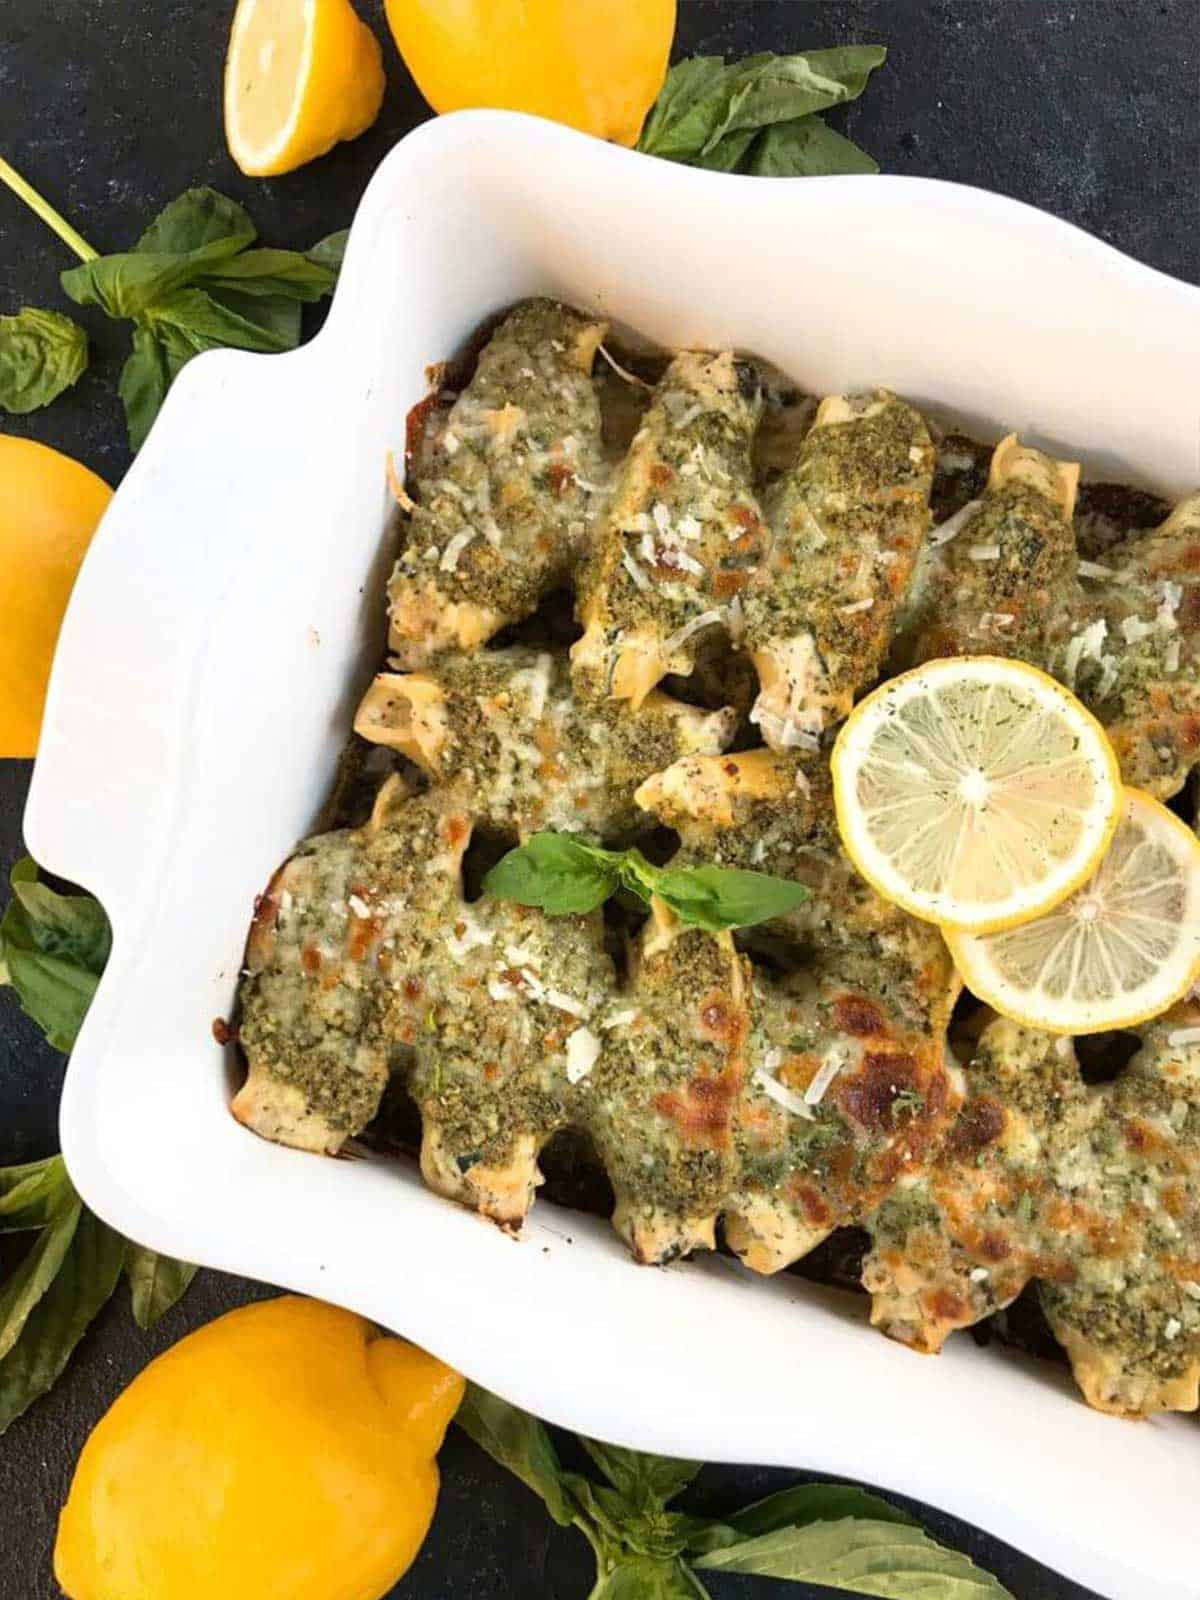 White casserole dish filled with stuffed shells topped with green sauce and garnished with lemon slices.